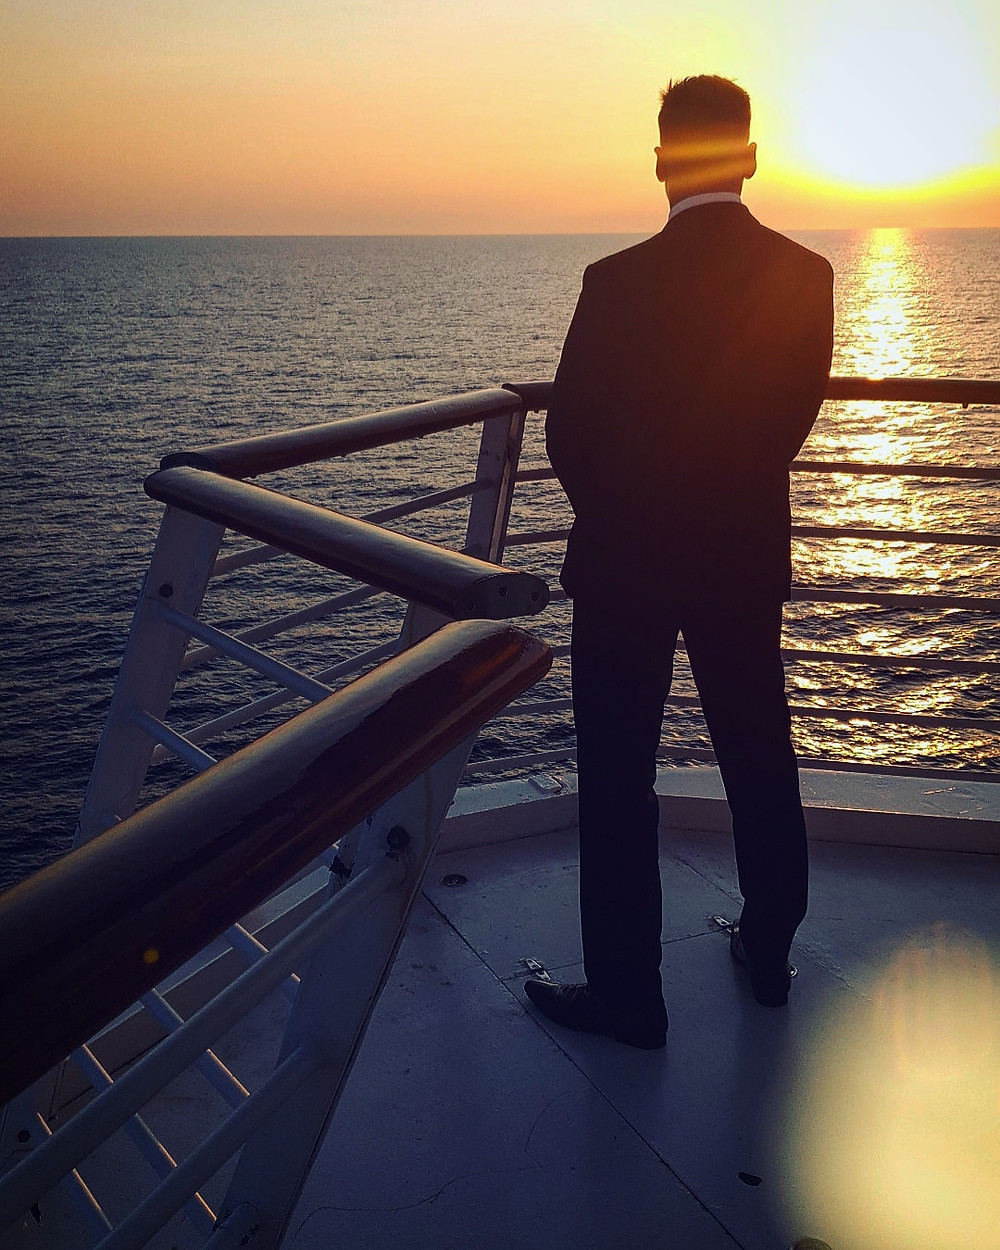 man-standing-on-a-cruise-ship-watching-the-sunset